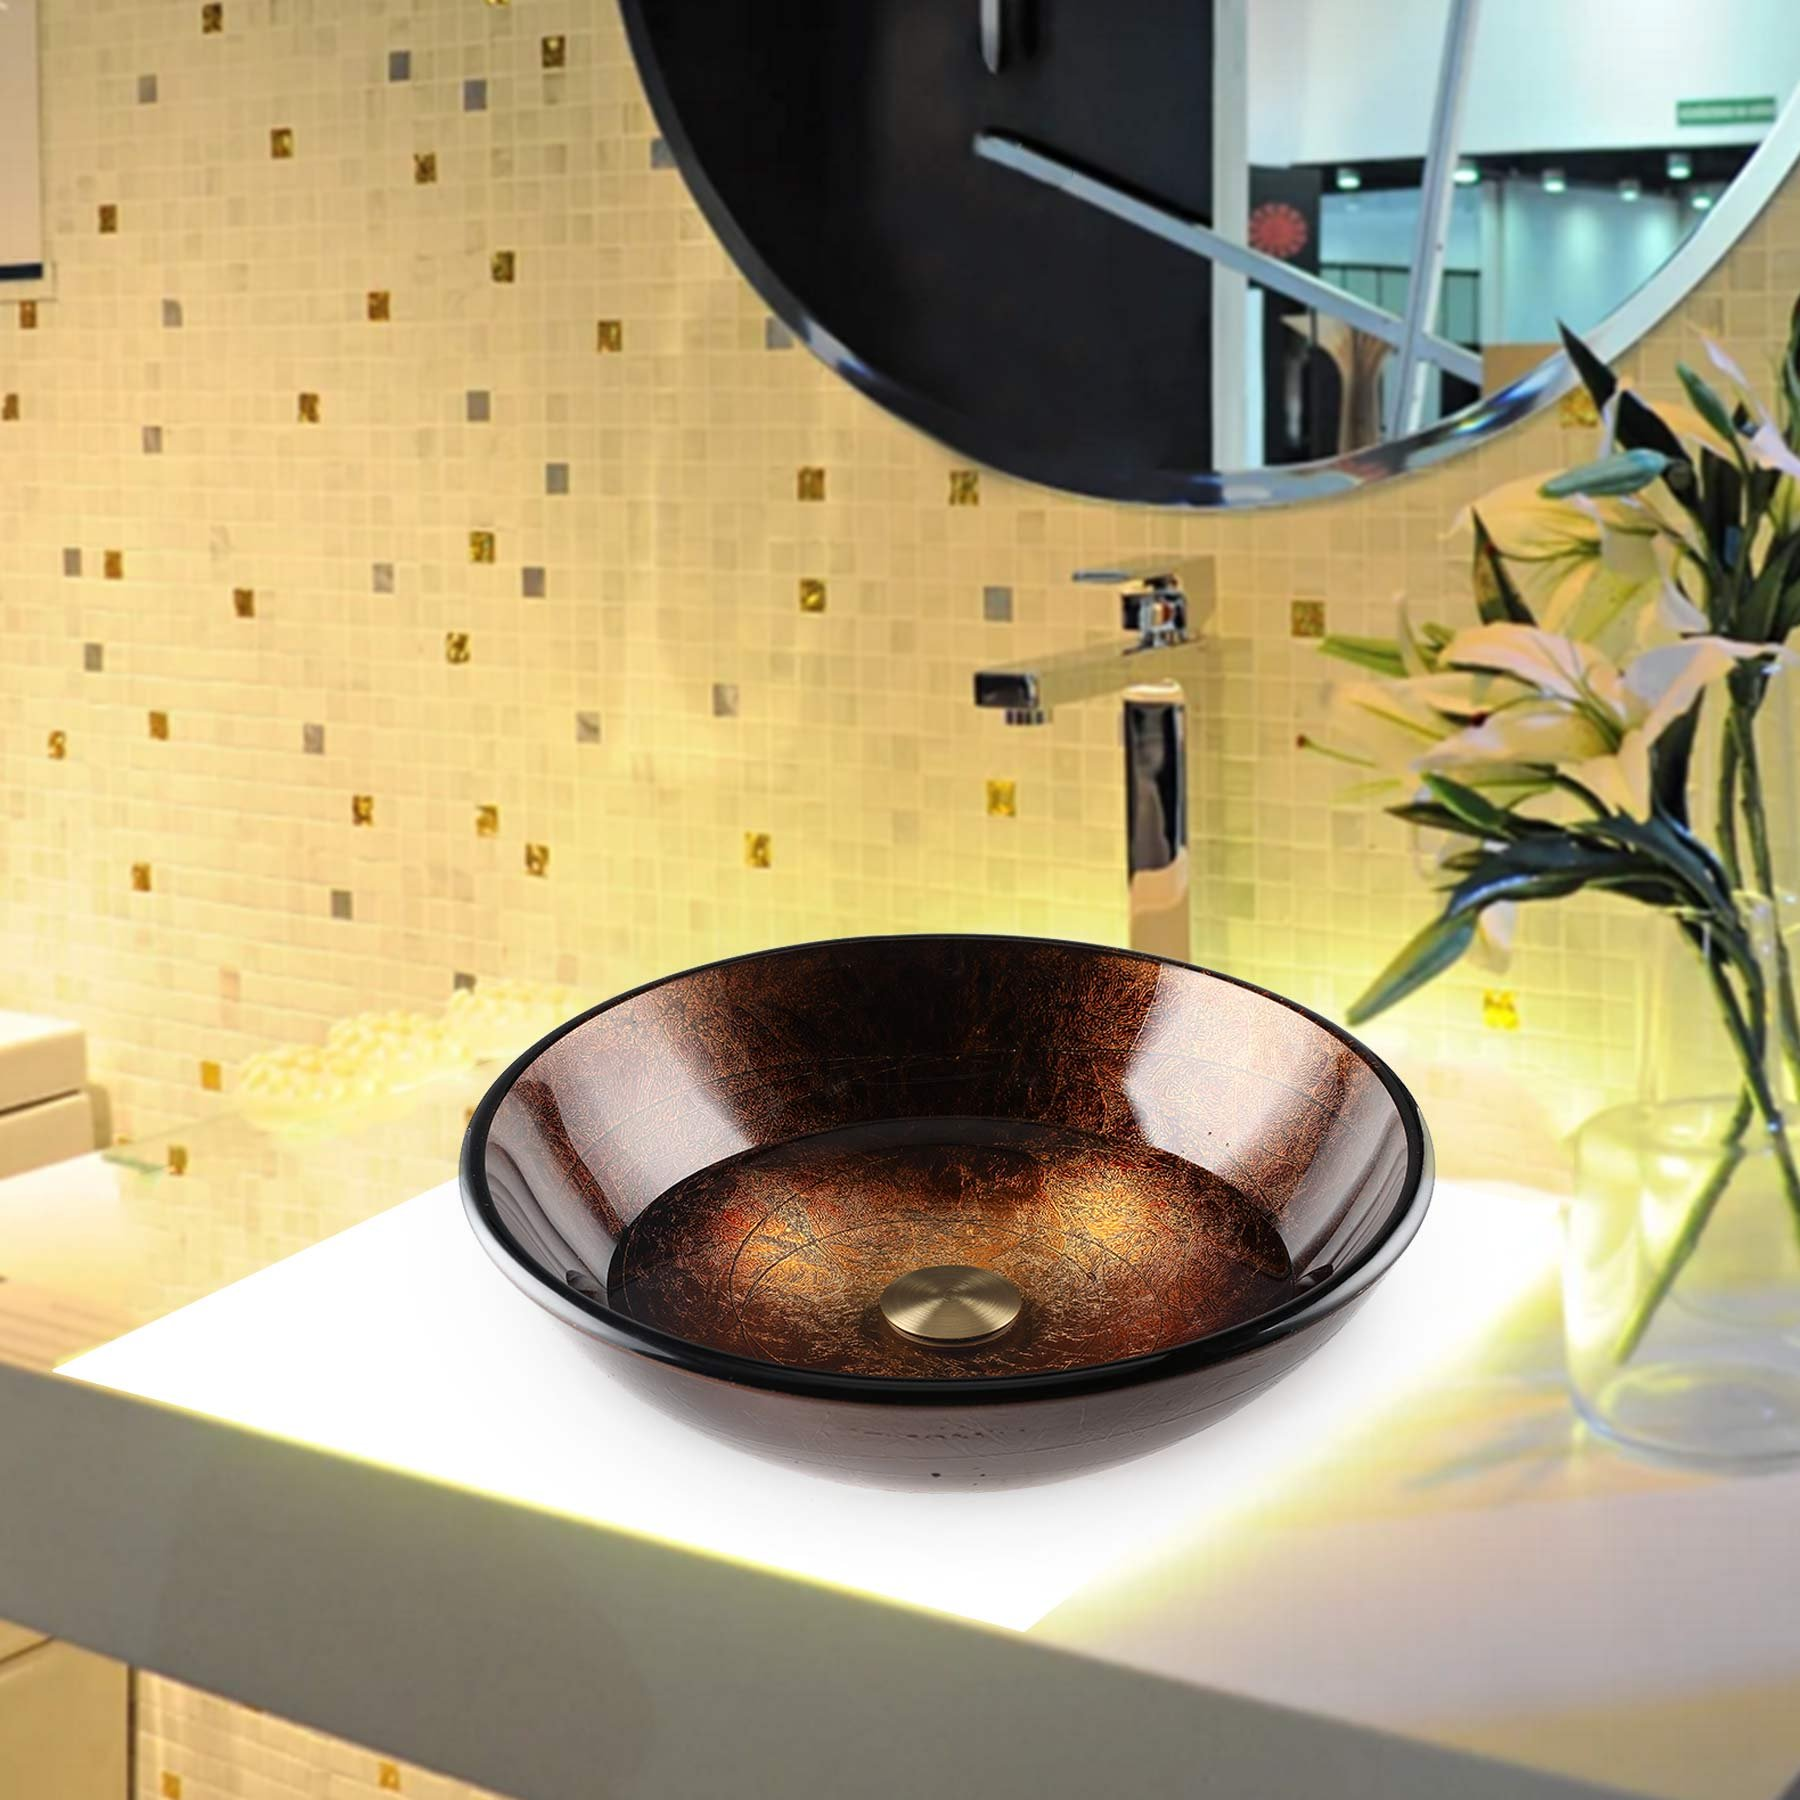 16.5'' x 16.5'' Bathroom Glass Vessel Sink, Round Artistic Handcrafted Gold Foil Color Tempered Glass Vanity Sink Bowl with Chrome Pop Up Drain Stopper (Copper) by CO-Z (Image #8)